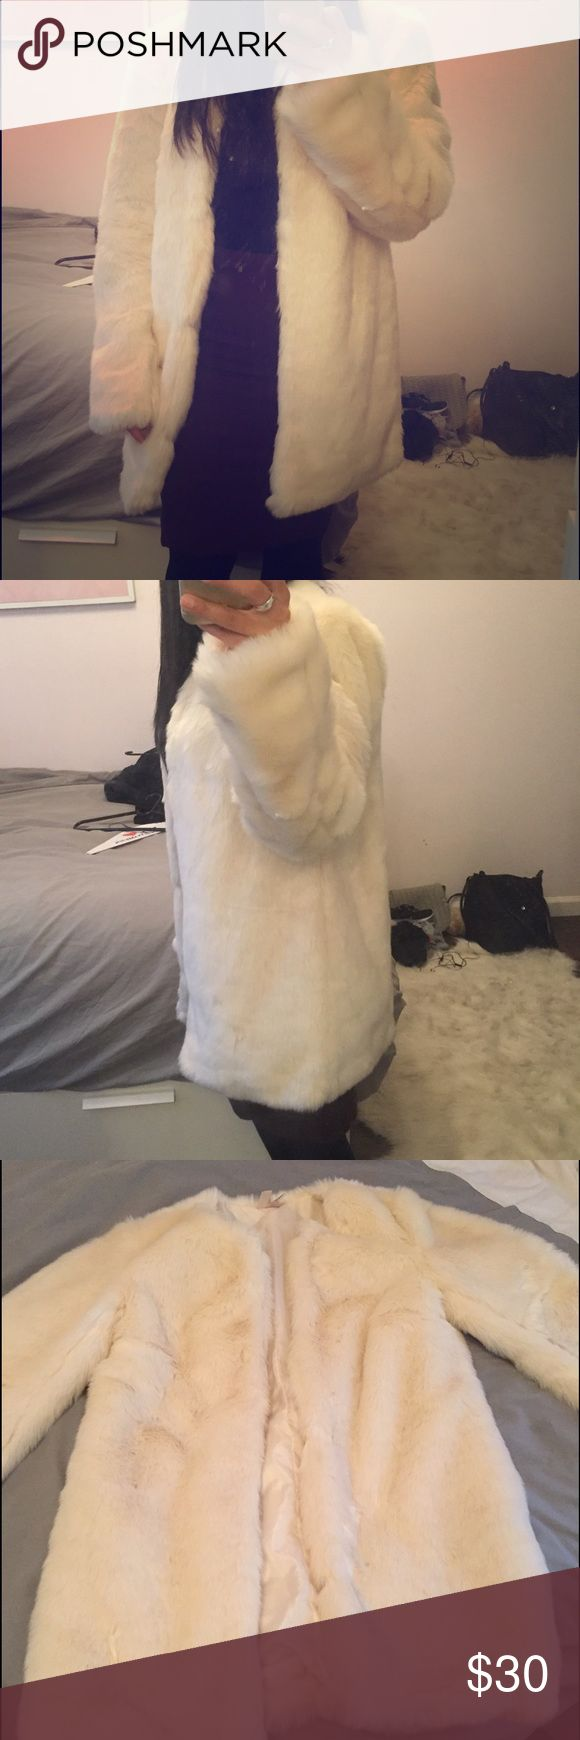 White faux fur coat Great white faux fur coat. Sits past waist and worn only once! No stains Jackets & Coats